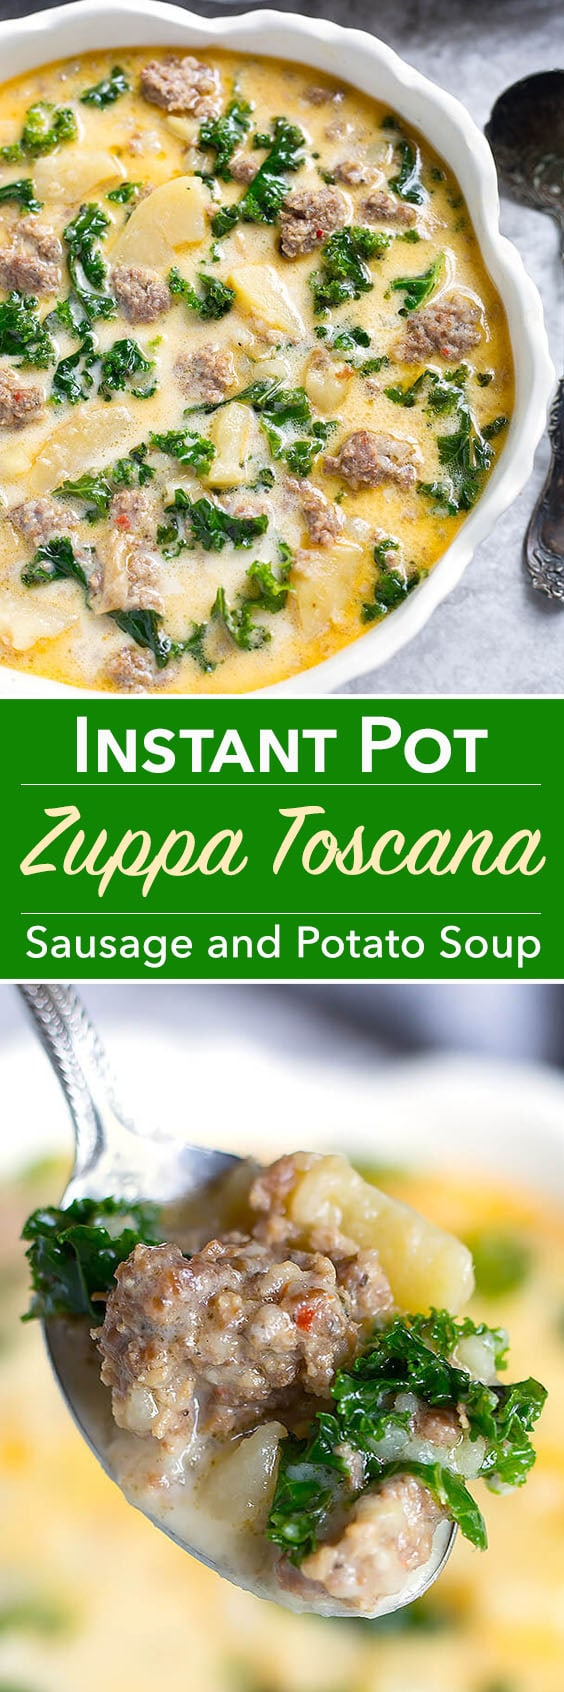 Instant Pot Zuppa Toscana (Sausage and Potato Soup) is hearty and full of rich flavor. One of my family's all-time favorites! Simple to make in your Instant Pot! simplyhappyfoodie.com #zuppatoscana #instantpotrecipes #instantpot #sausagepotatosoup #instantpotsoup